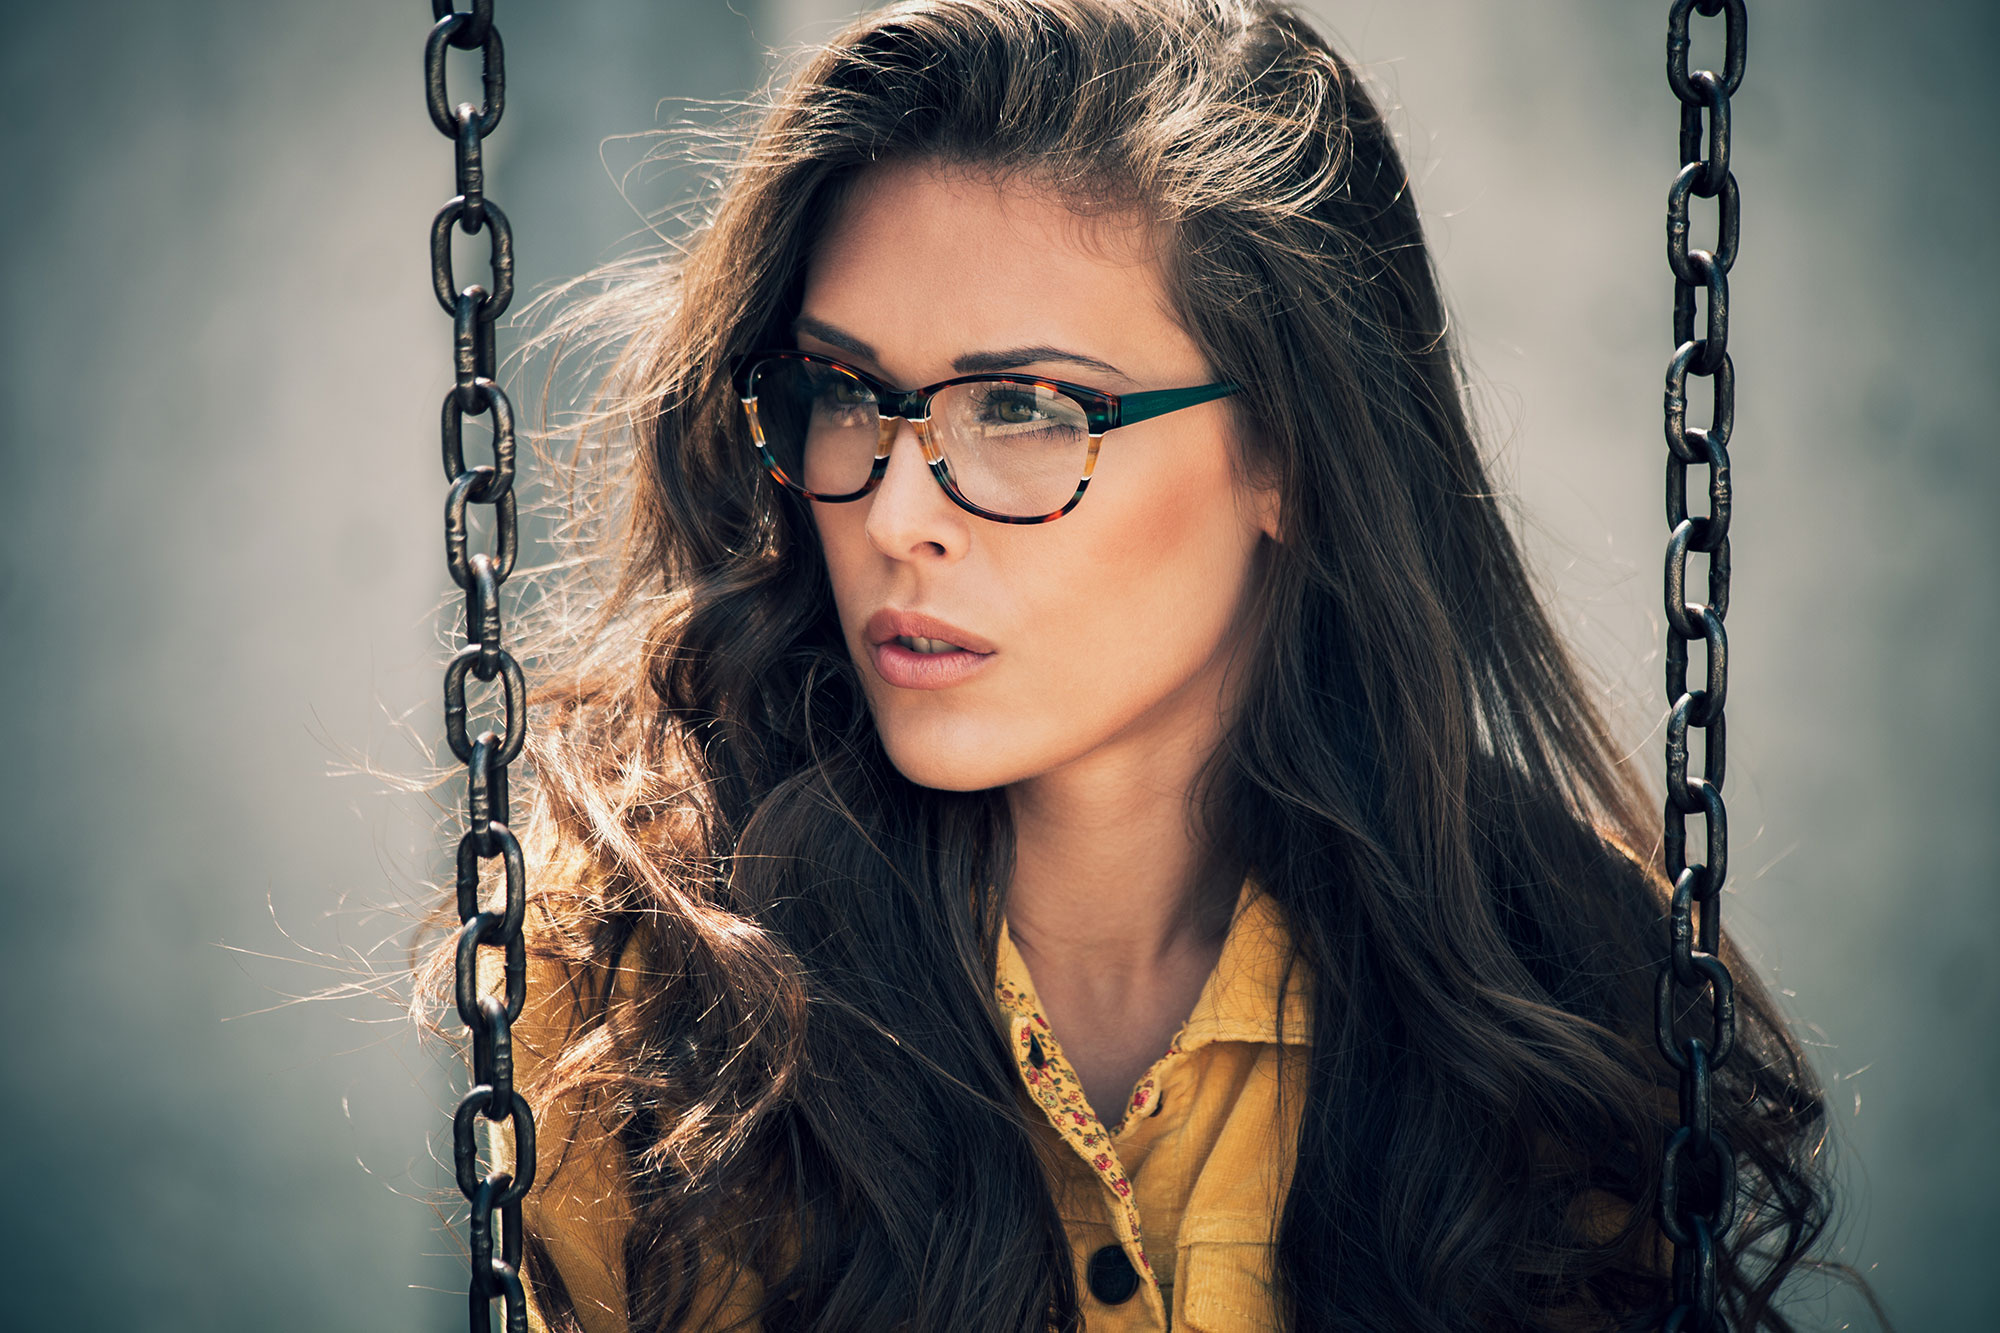 eyeglass frames for women, designer eyeglasses